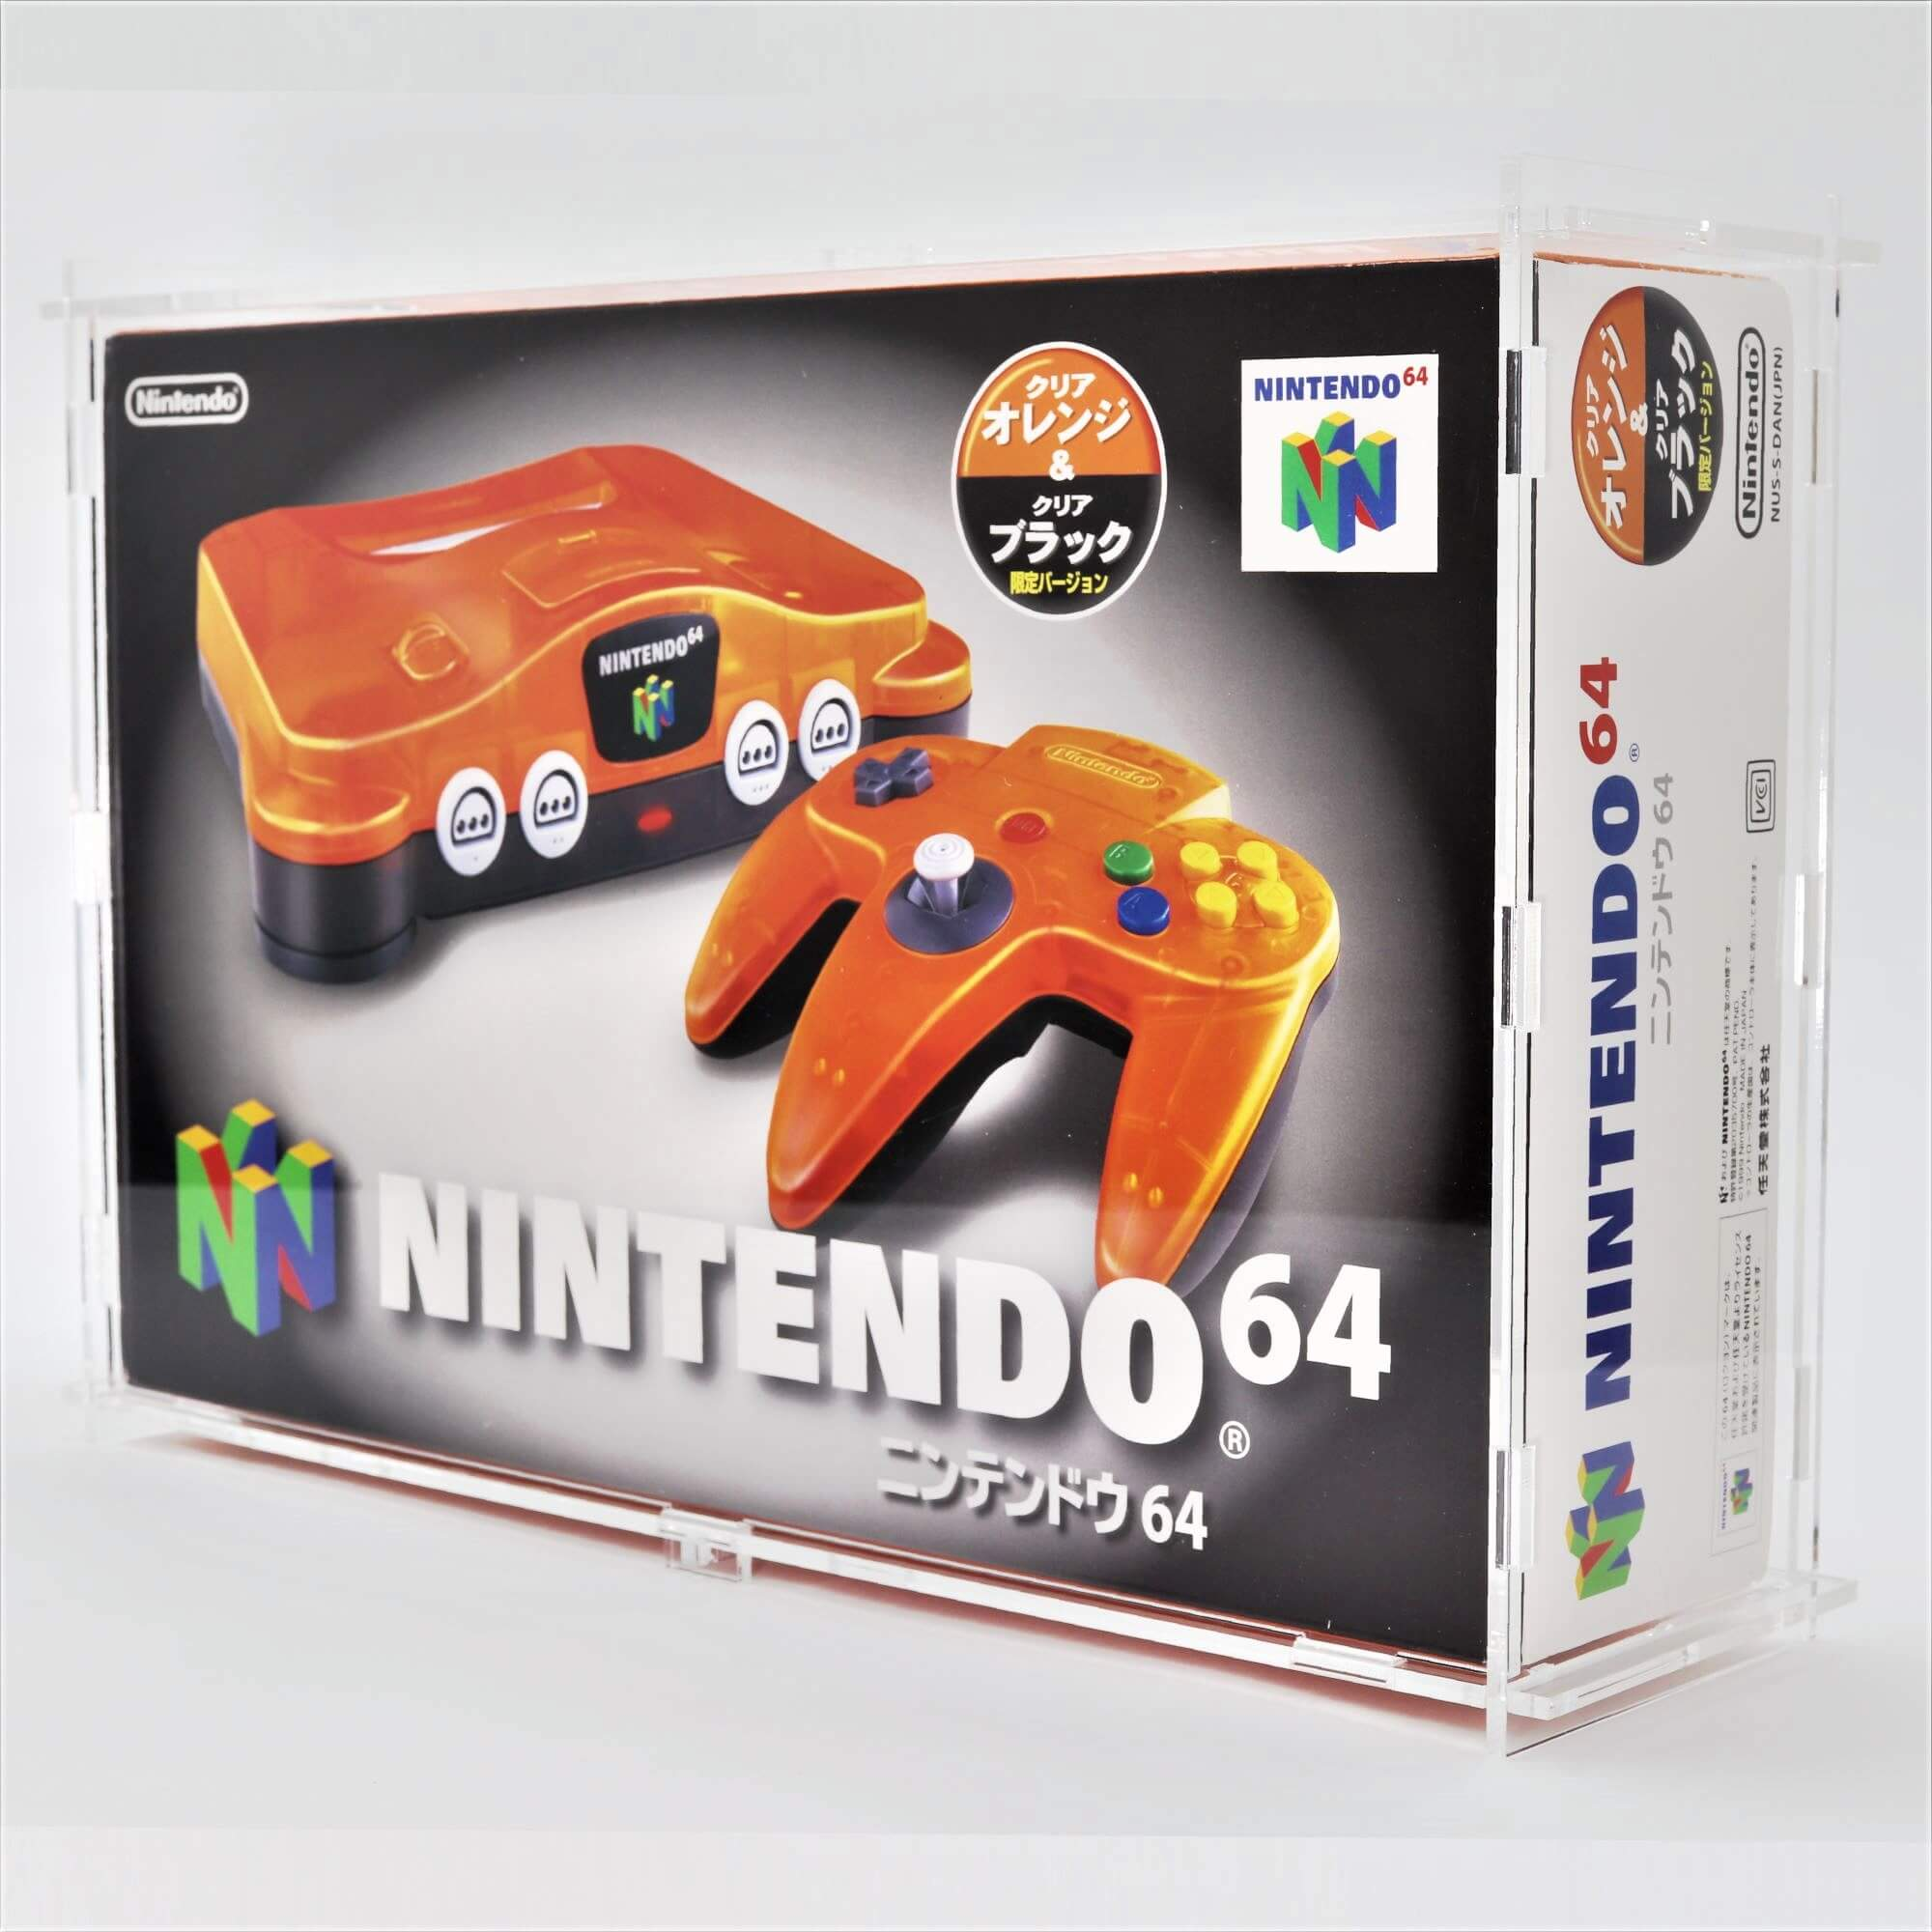 Clear Acrylic Japanese Nintendo 64 Boxed Console Display Case